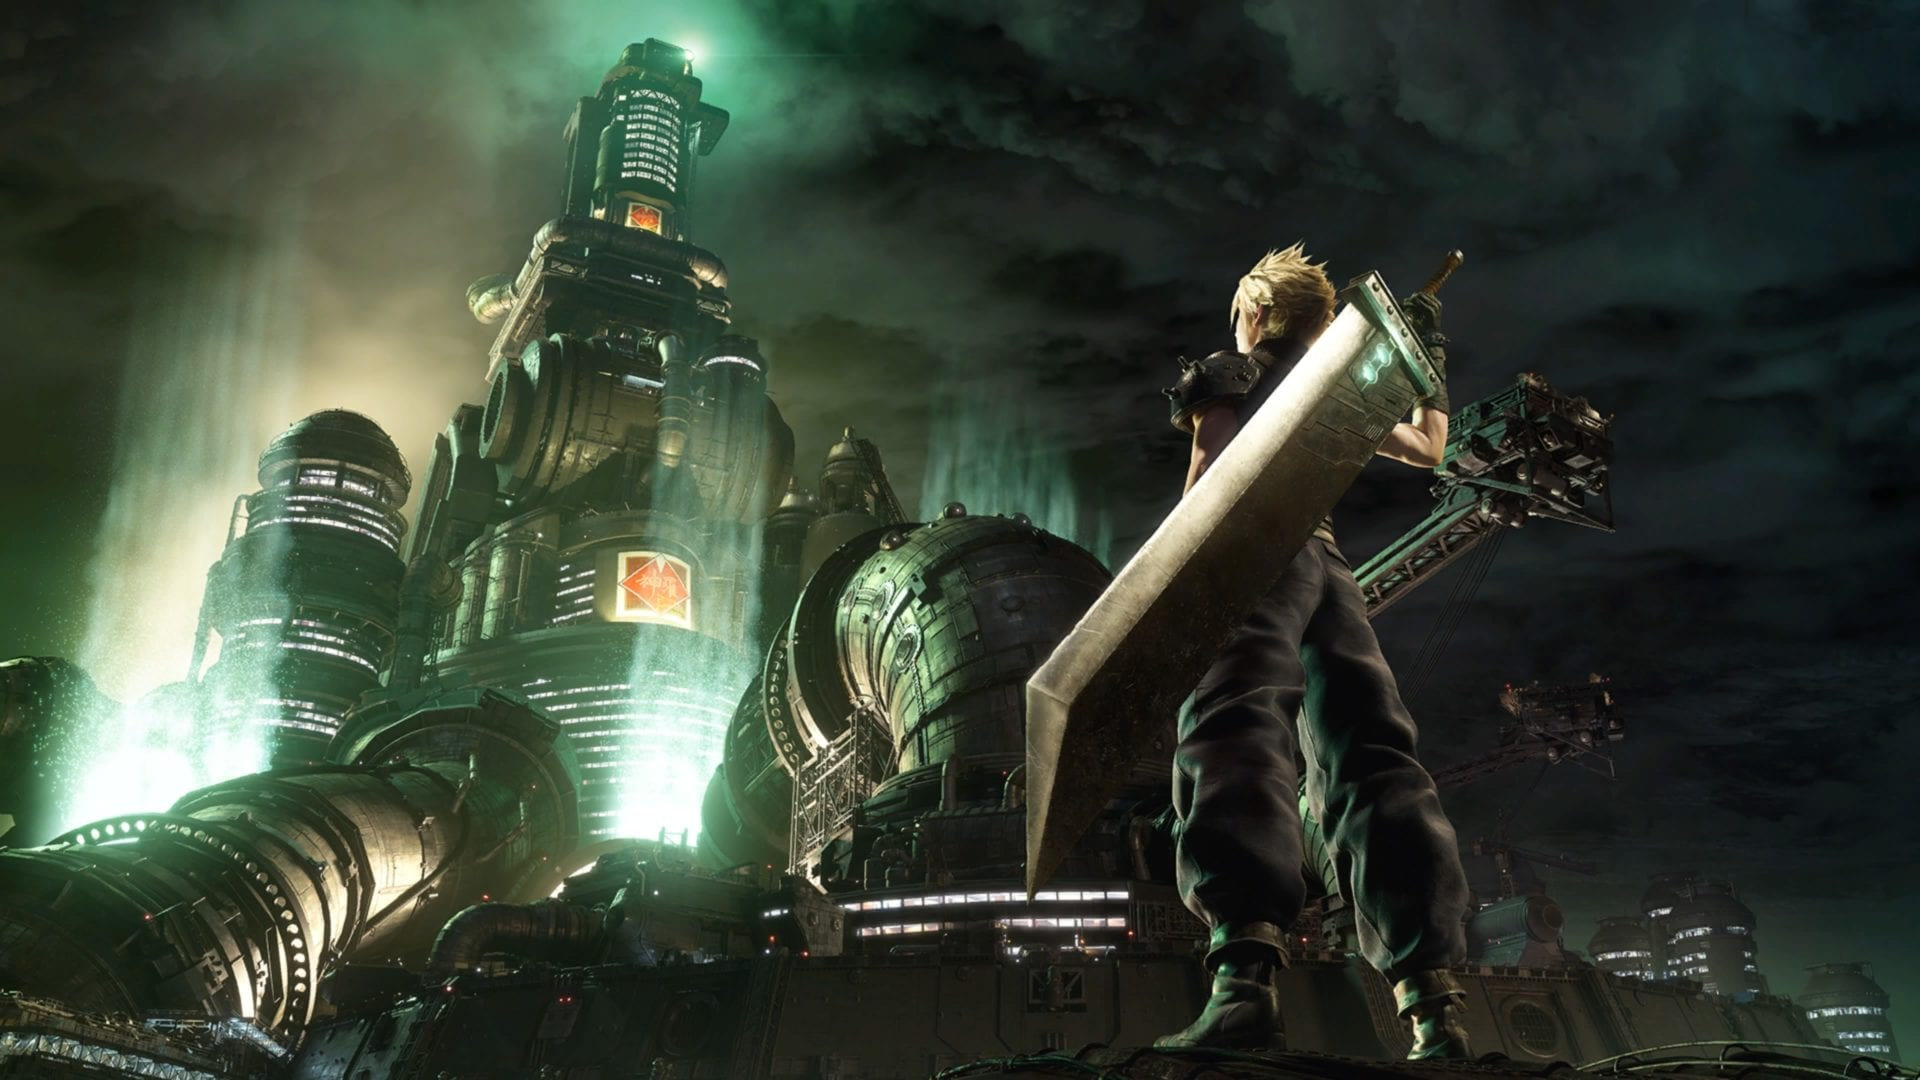 final fantasy 7 remake, leviathan